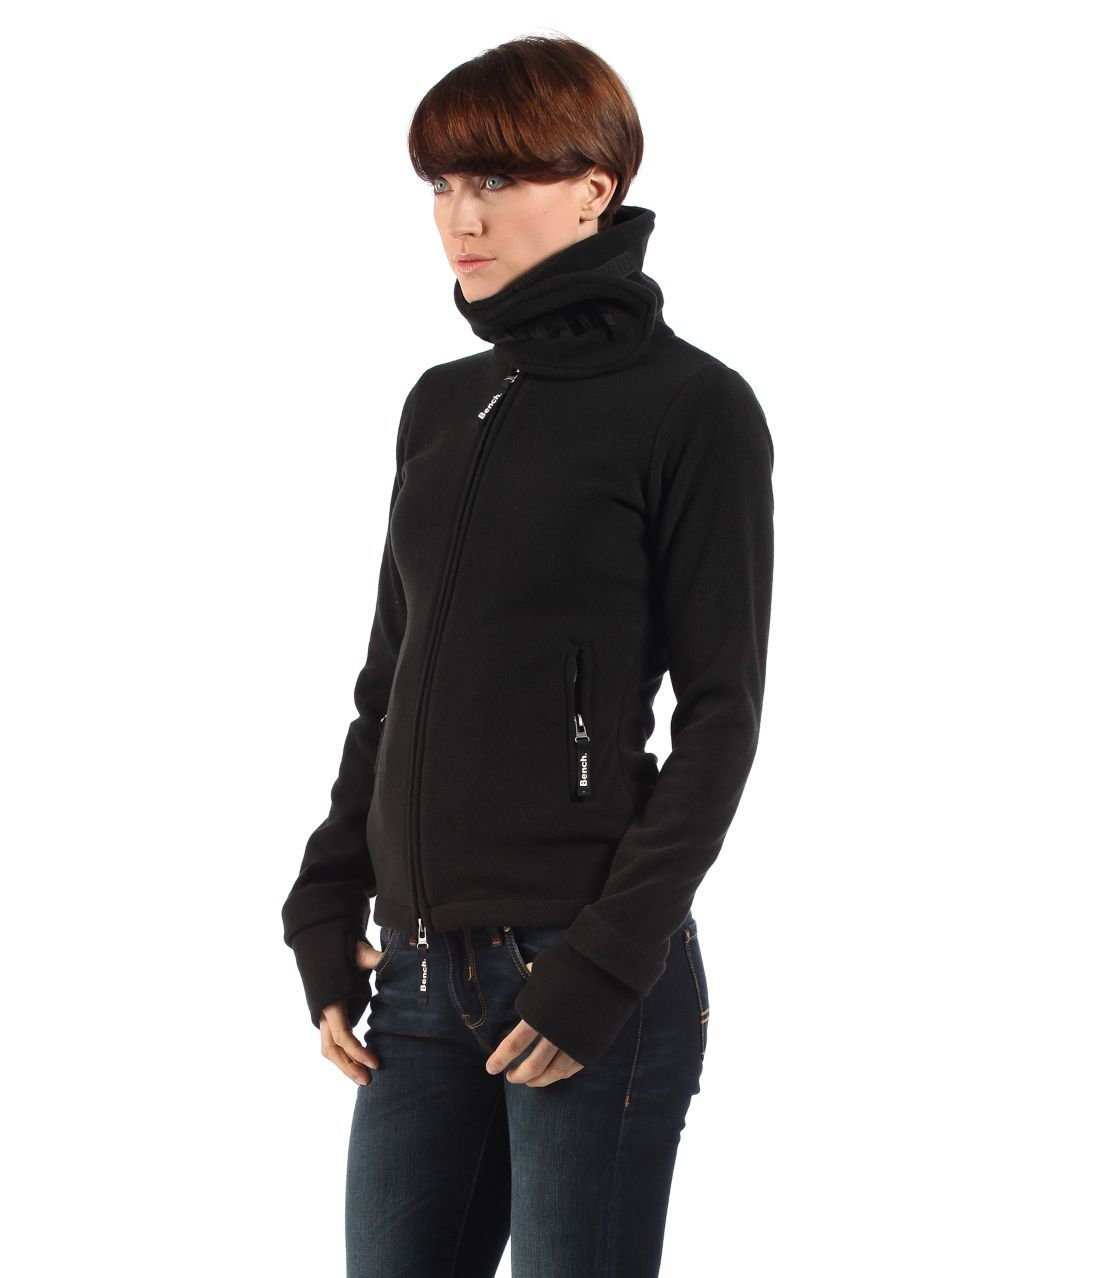 Funnel neck zip up fleece jacket with velcro close at the collarThumbholes on sleeves Bench logo embroidered across front of collar Bench logo on zips